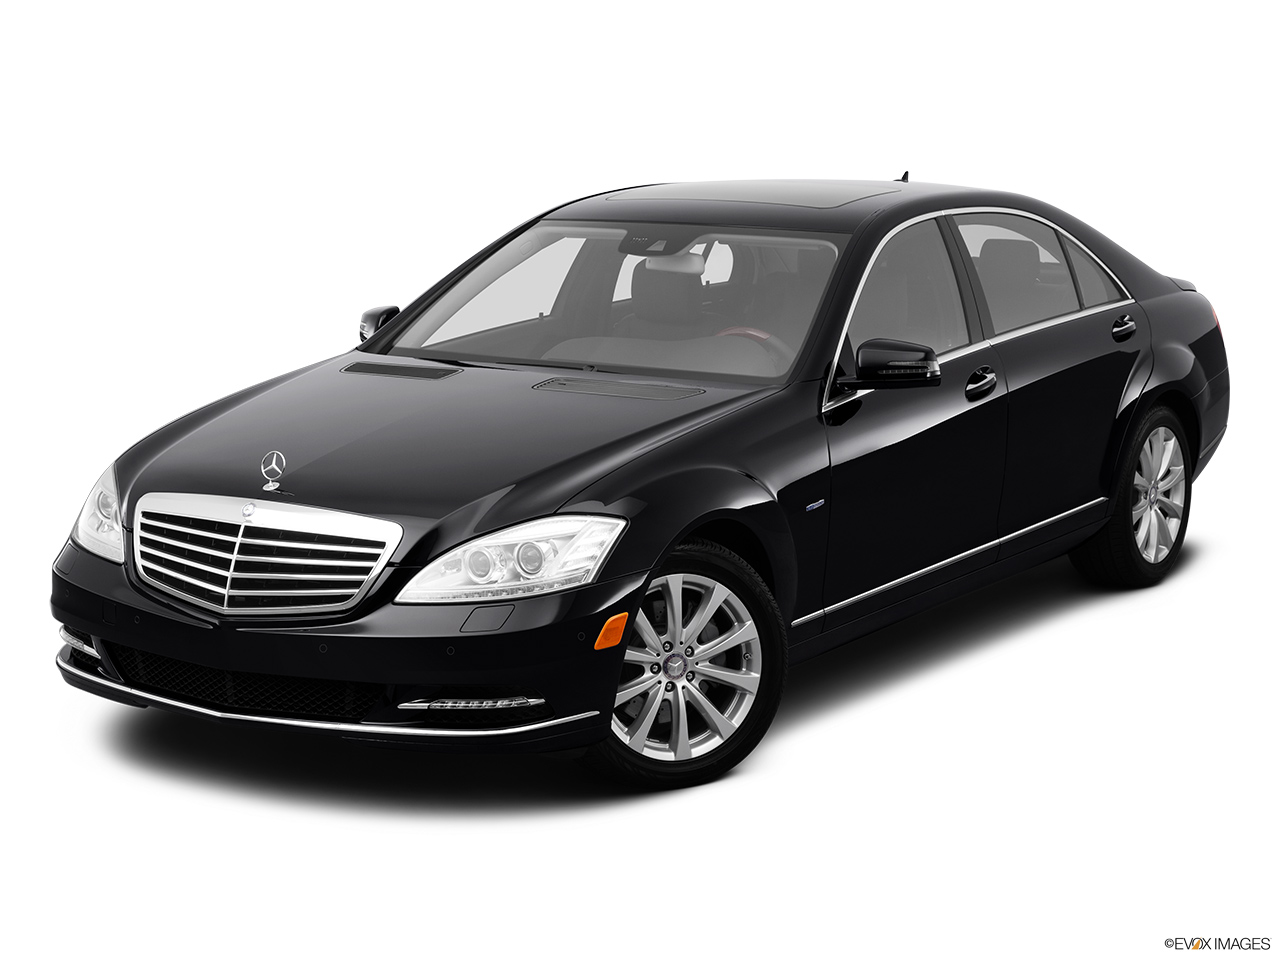 2012 Mercedes-Benz S-Class Hybrid S400 Front angle view.